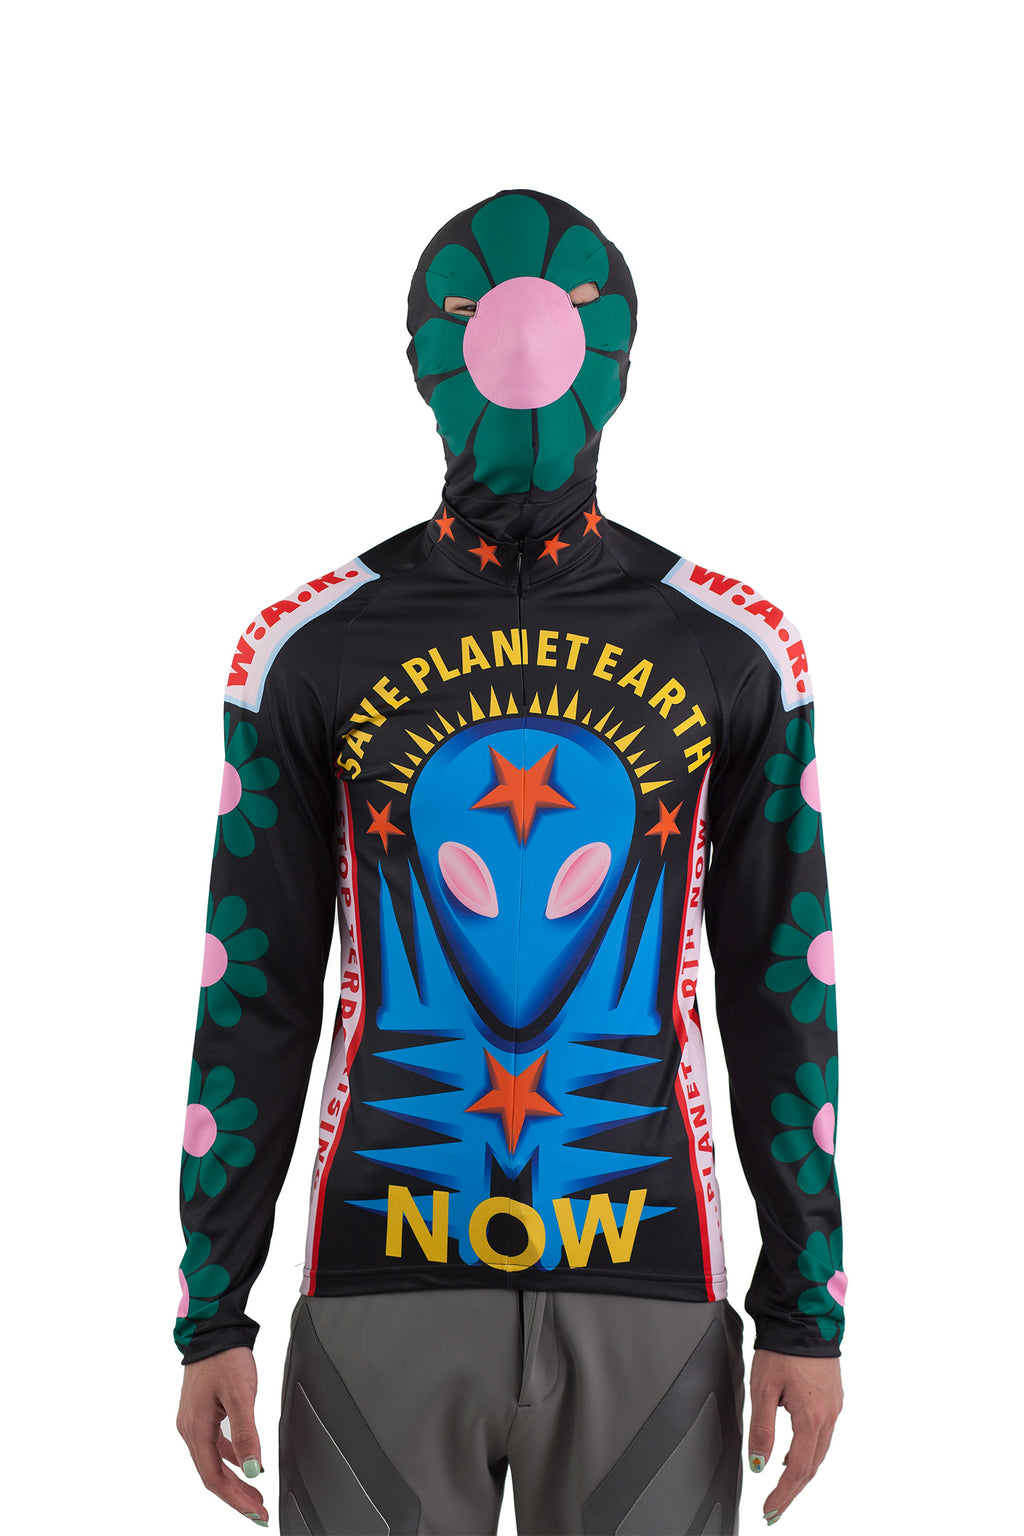 Save Planet Earth Bike Top